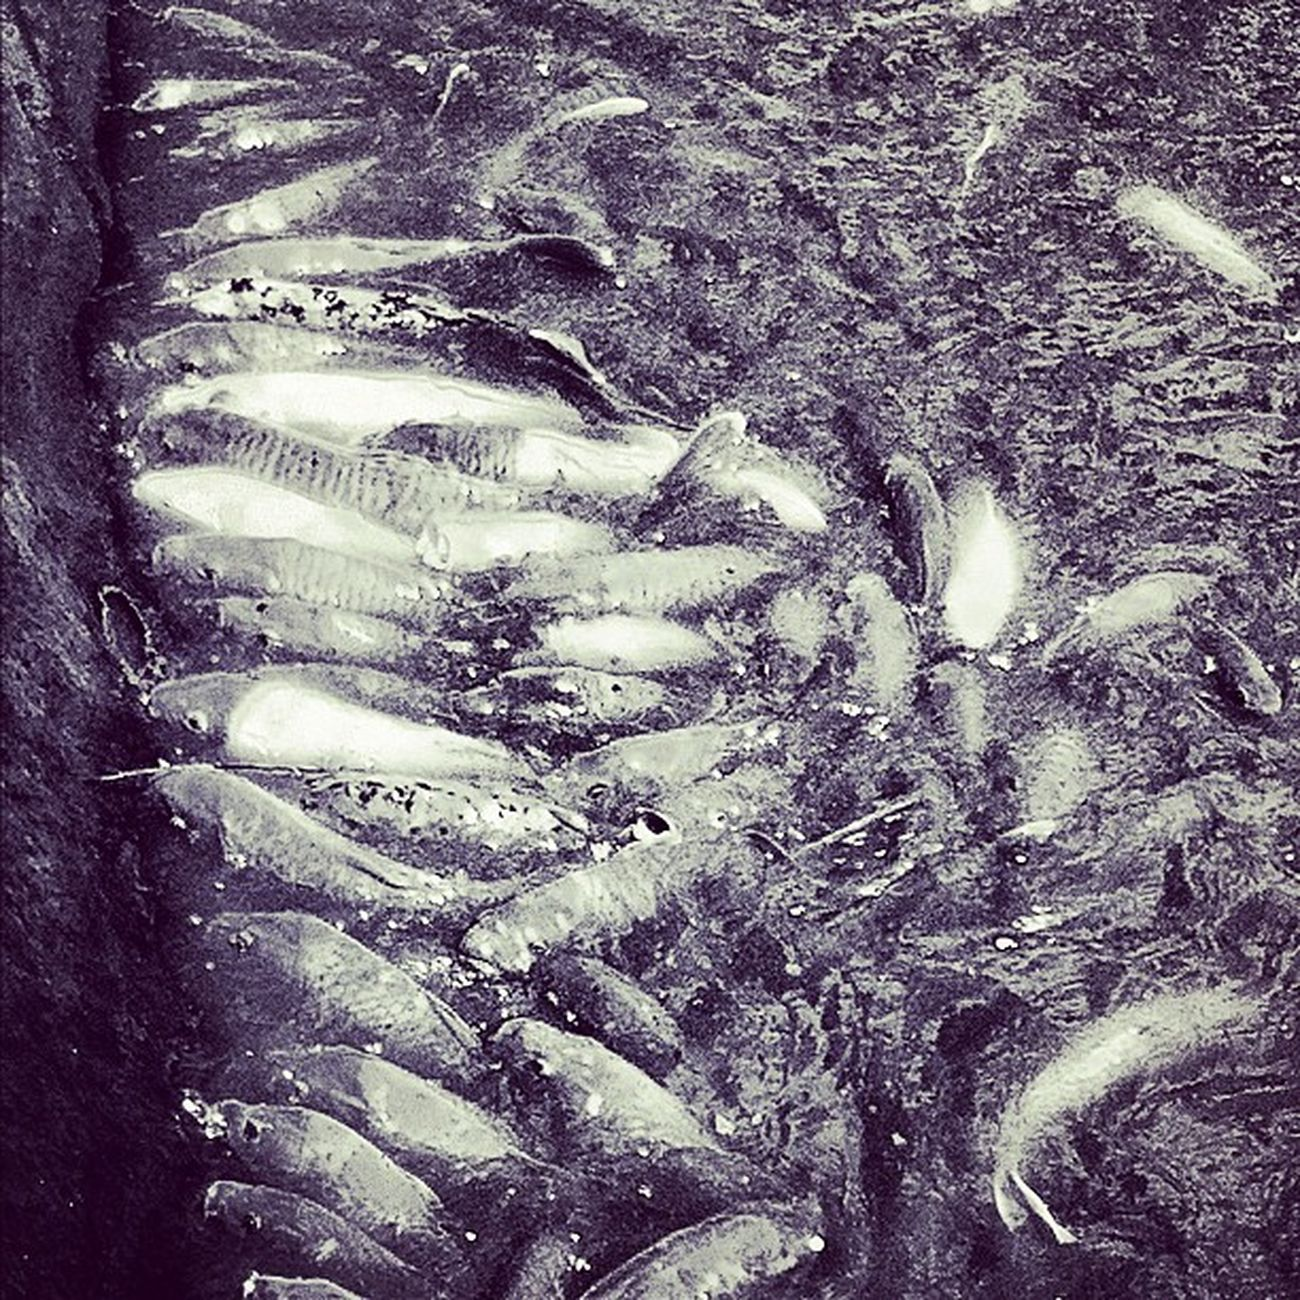 Koi Doleplantation Instagram Hawaii iphoneography oahu northshore instaview blackandwhite